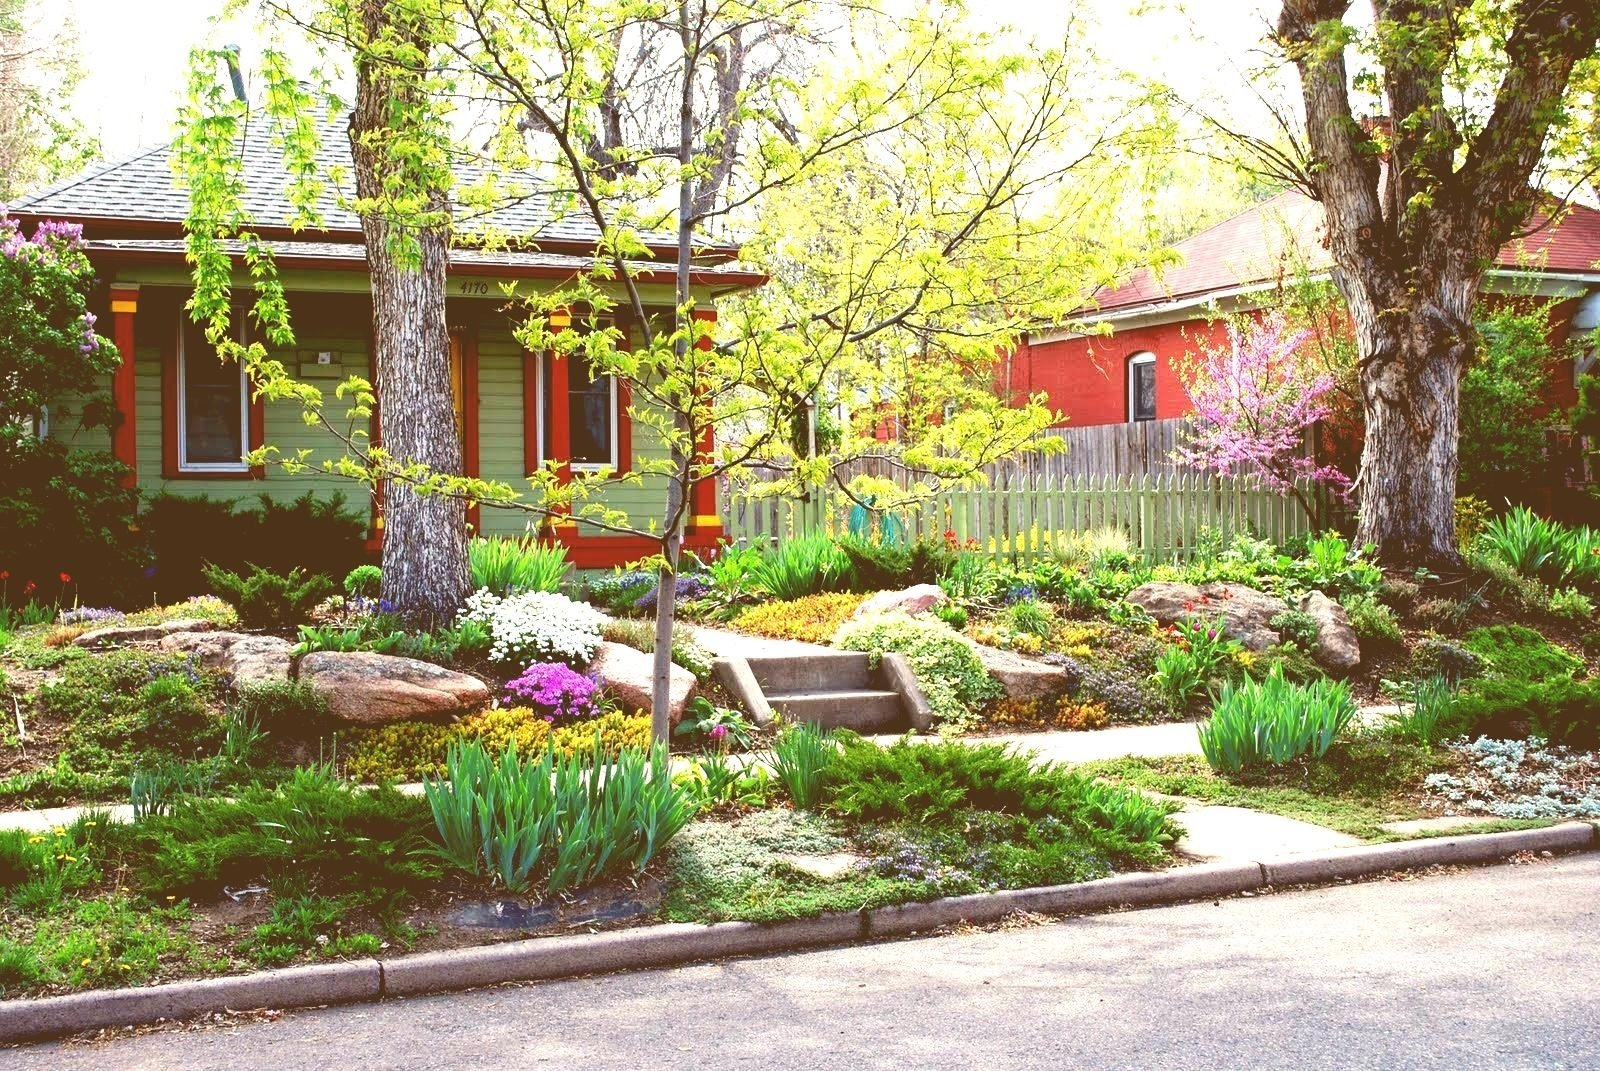 10 Stylish Ideas For Front Yard Landscaping Without Grass surprising ideas for front yard landscaping without grass pics 2021